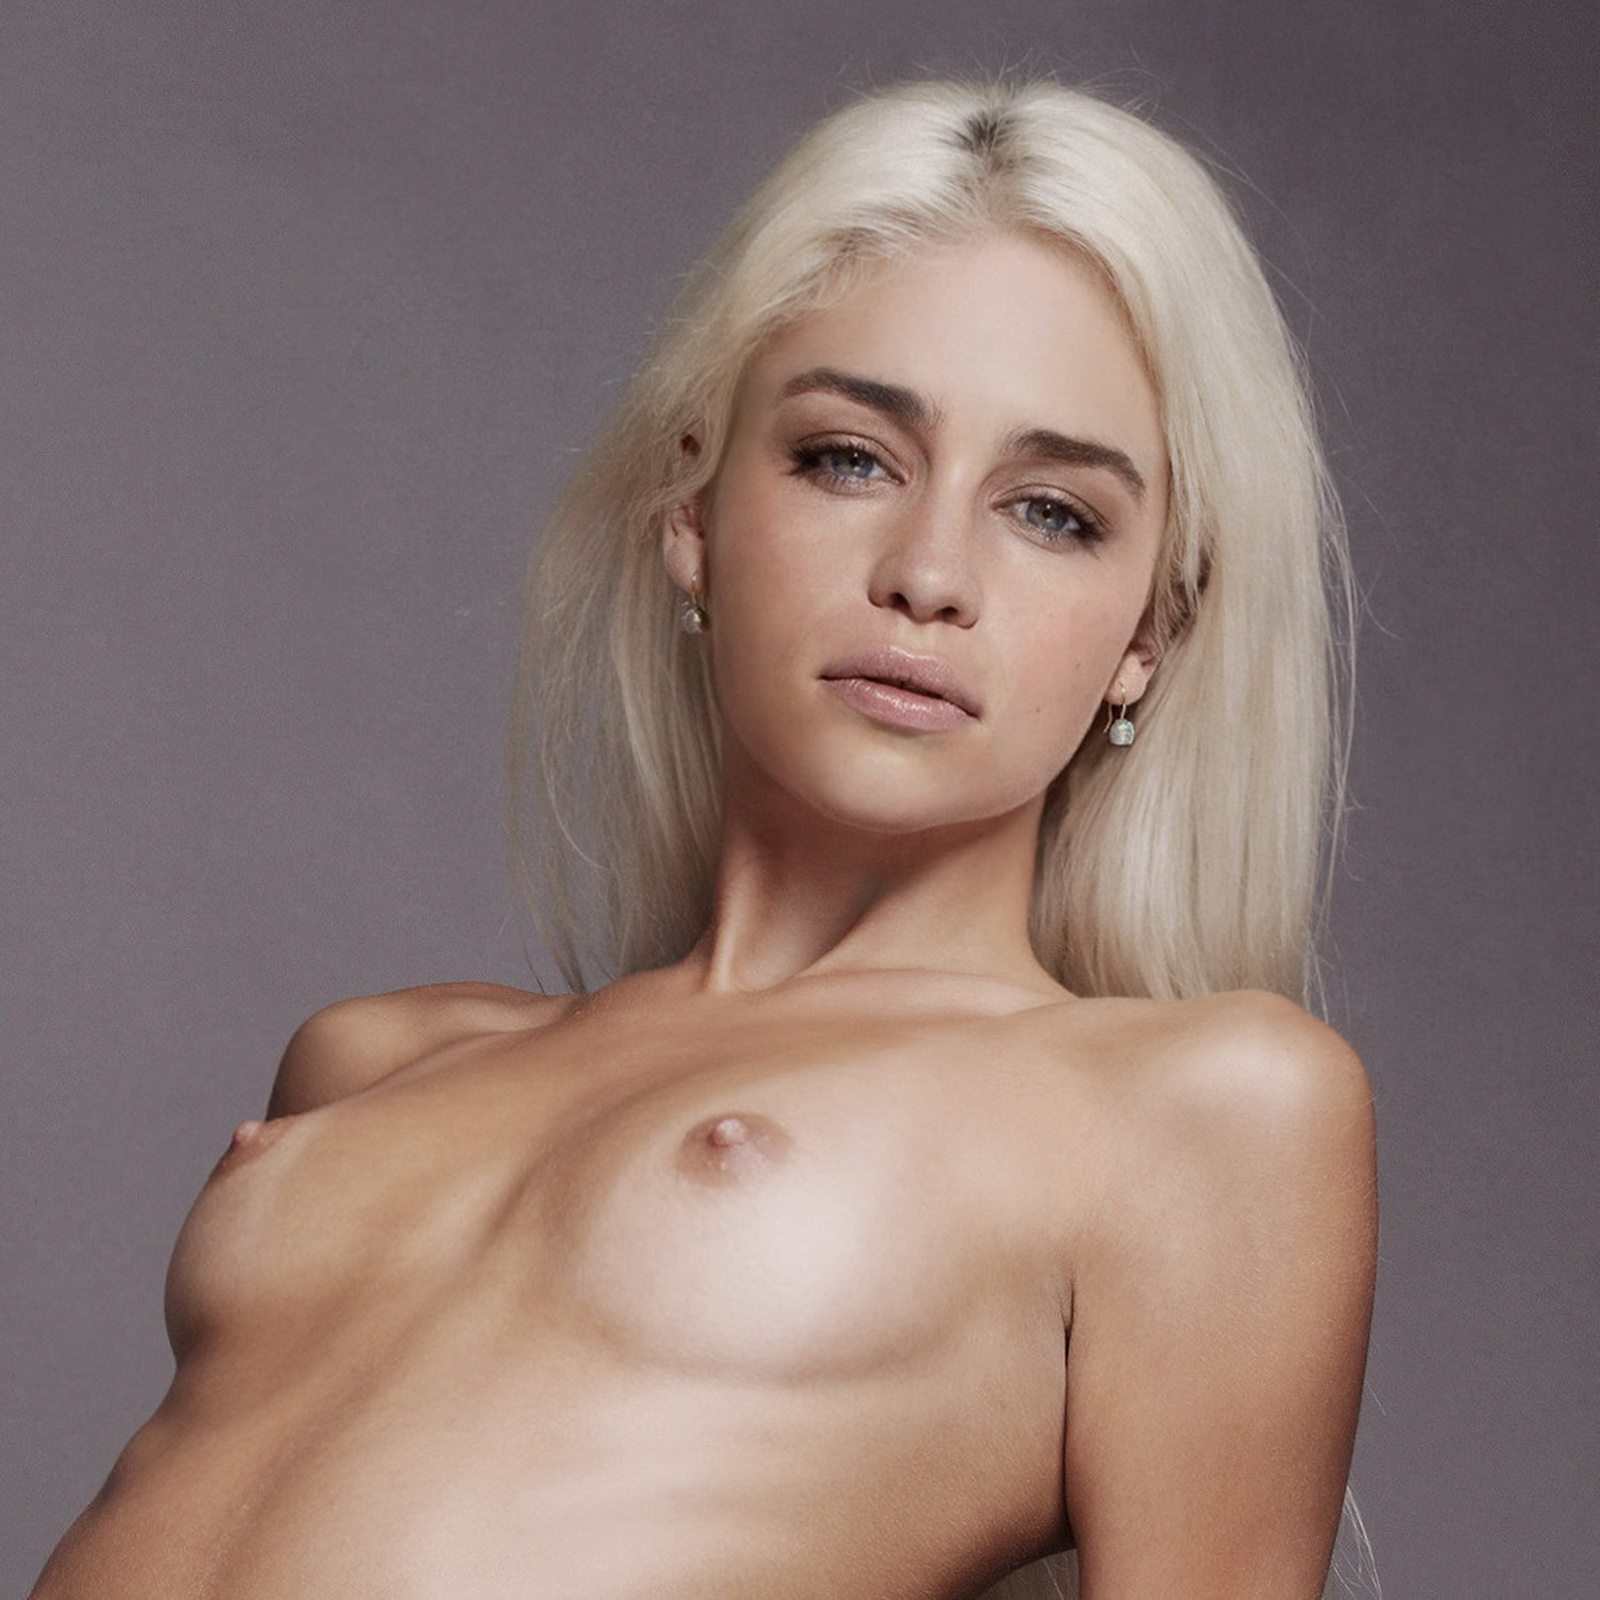 Emilia Clarke Nude Game of Thrones